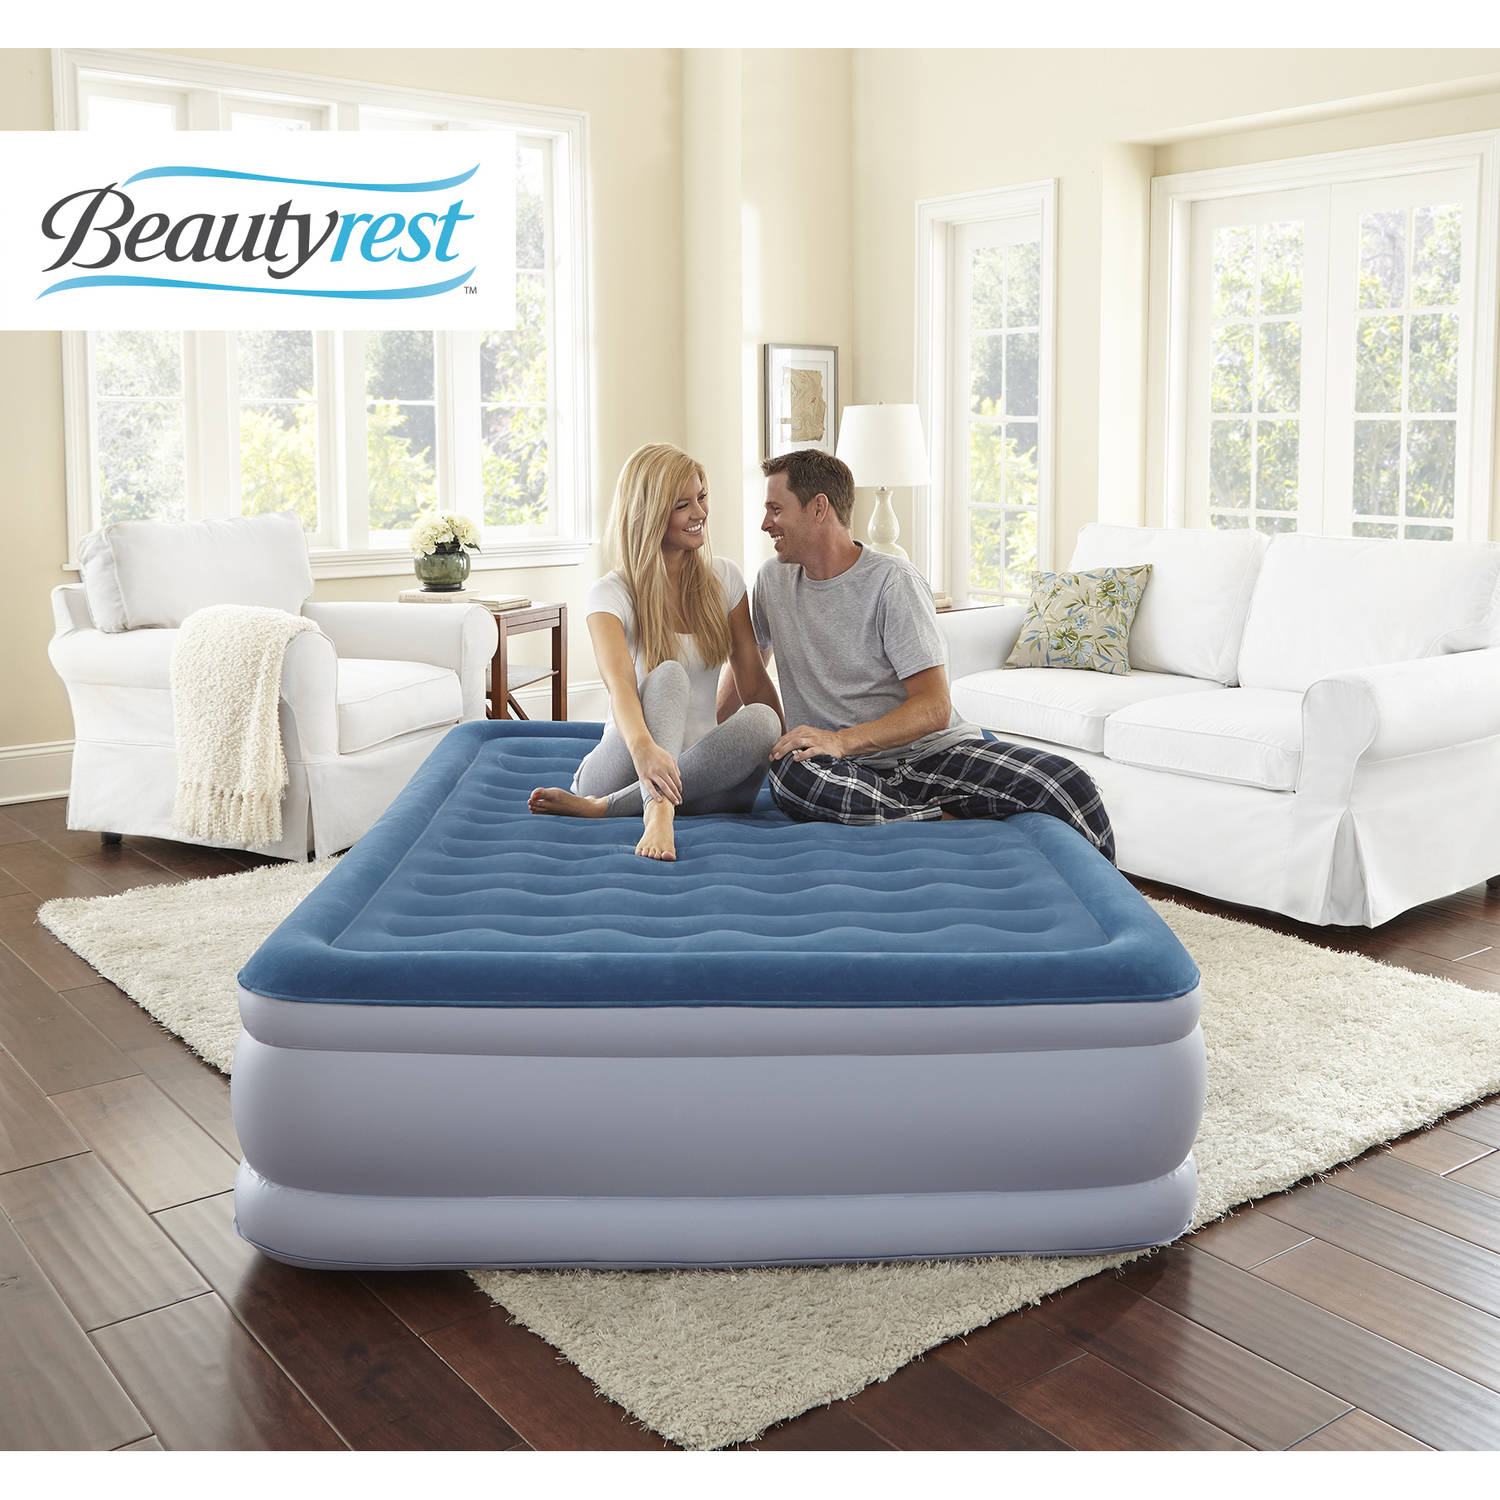 Simmons Beautyrest Extraordinaire Raised Air Bed Mattress with iFlex Support and Built-in Pump, Multiple Sizes